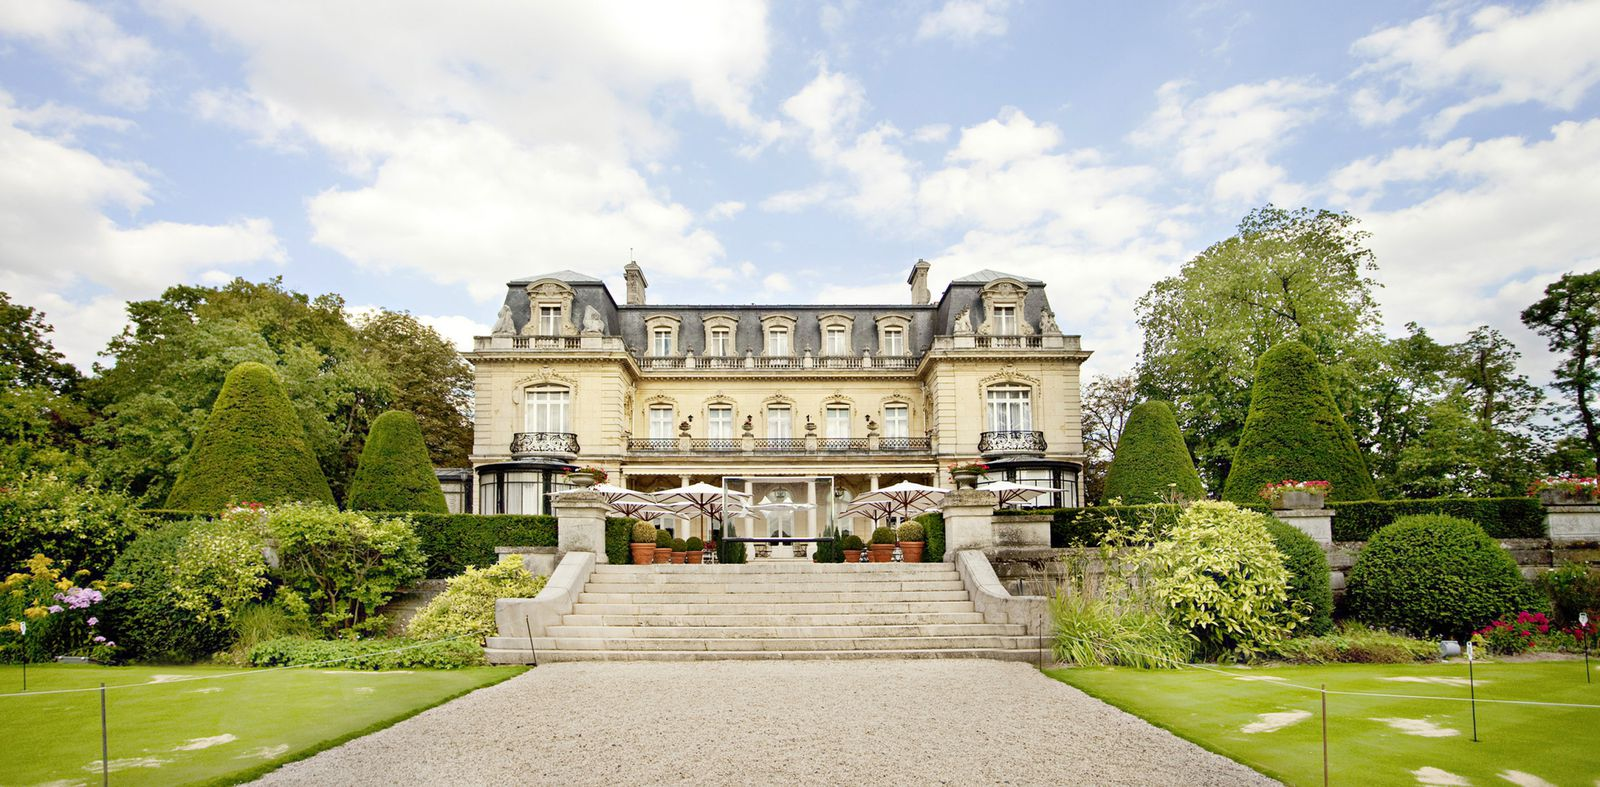 Hotel les crayeres reims france h tels luxe jardins for Le jardin reims